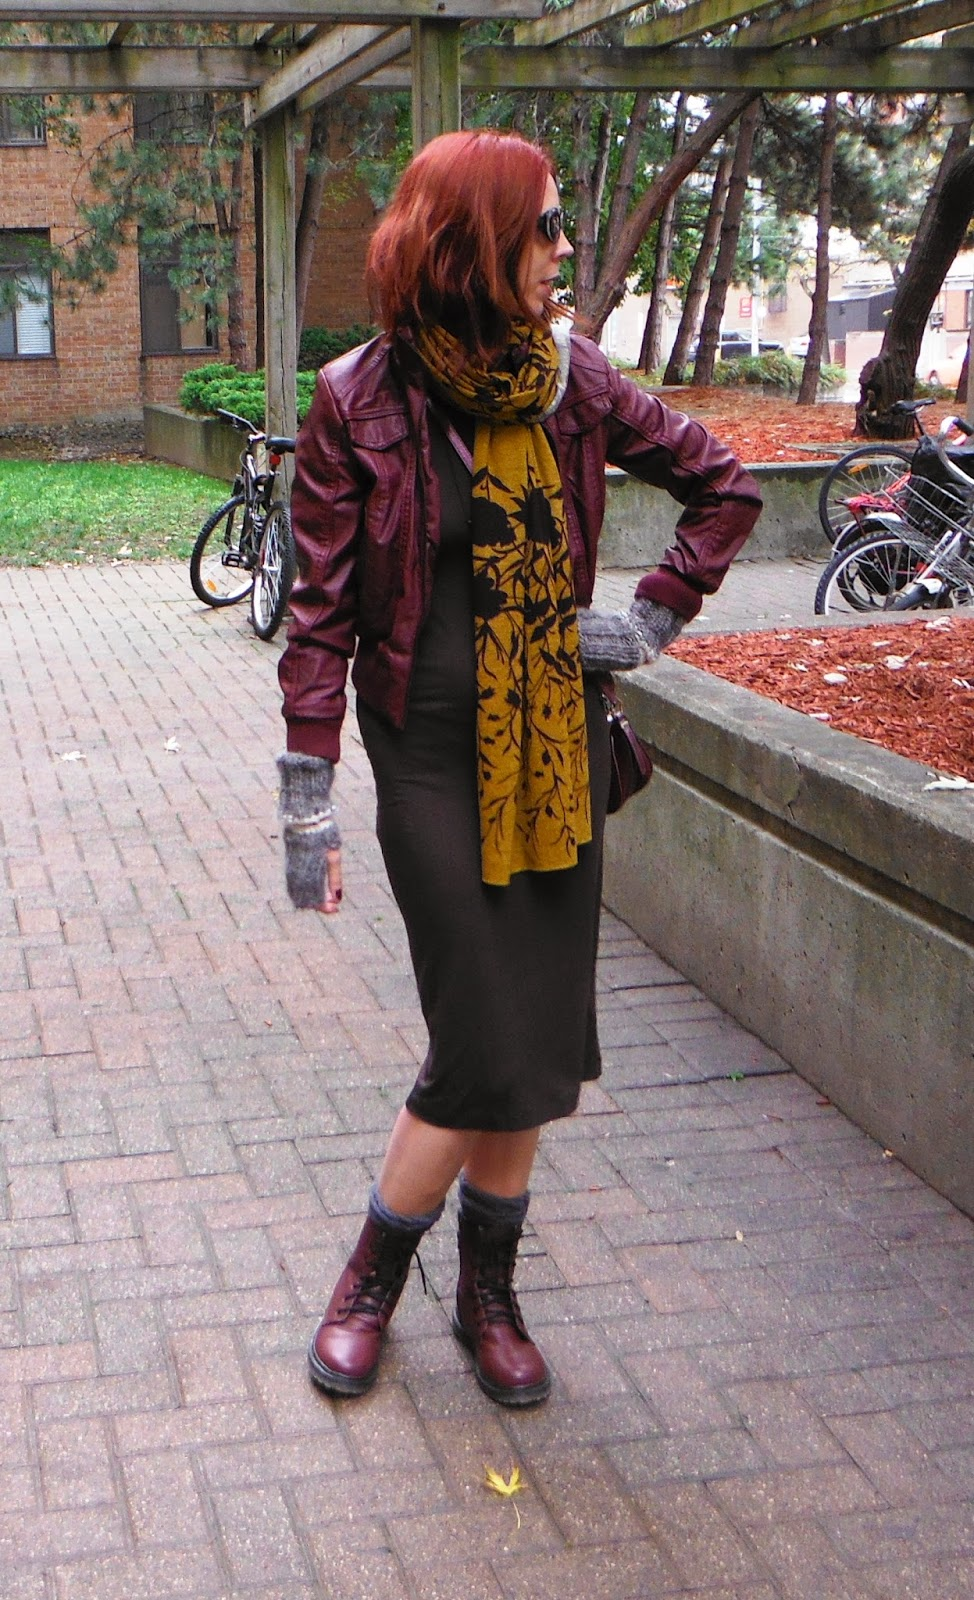 fashion outfit burgundy leather bomber jacket from Marshalls, H and M tank dress, Guess purse, boots from Urban planet, bright green scarf, hand knitted arm warmers, styled by melanie.p.s for the purple scarf.